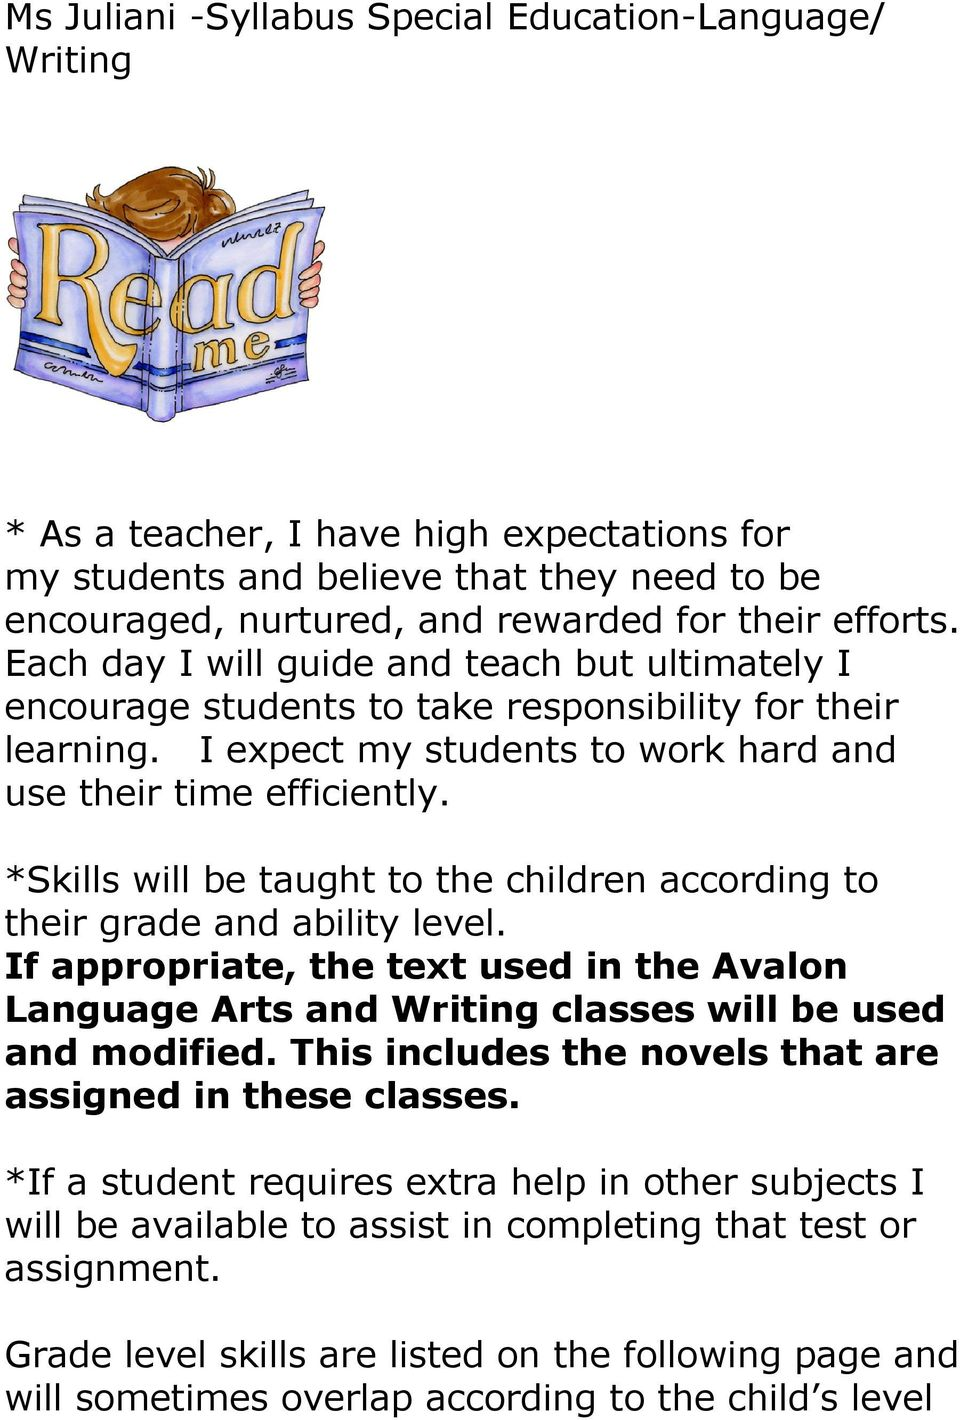 *Skills will be taught to the children according to their grade and ability level. If appropriate, the text used in the Avalon Language Arts and Writing classes will be used and modified.